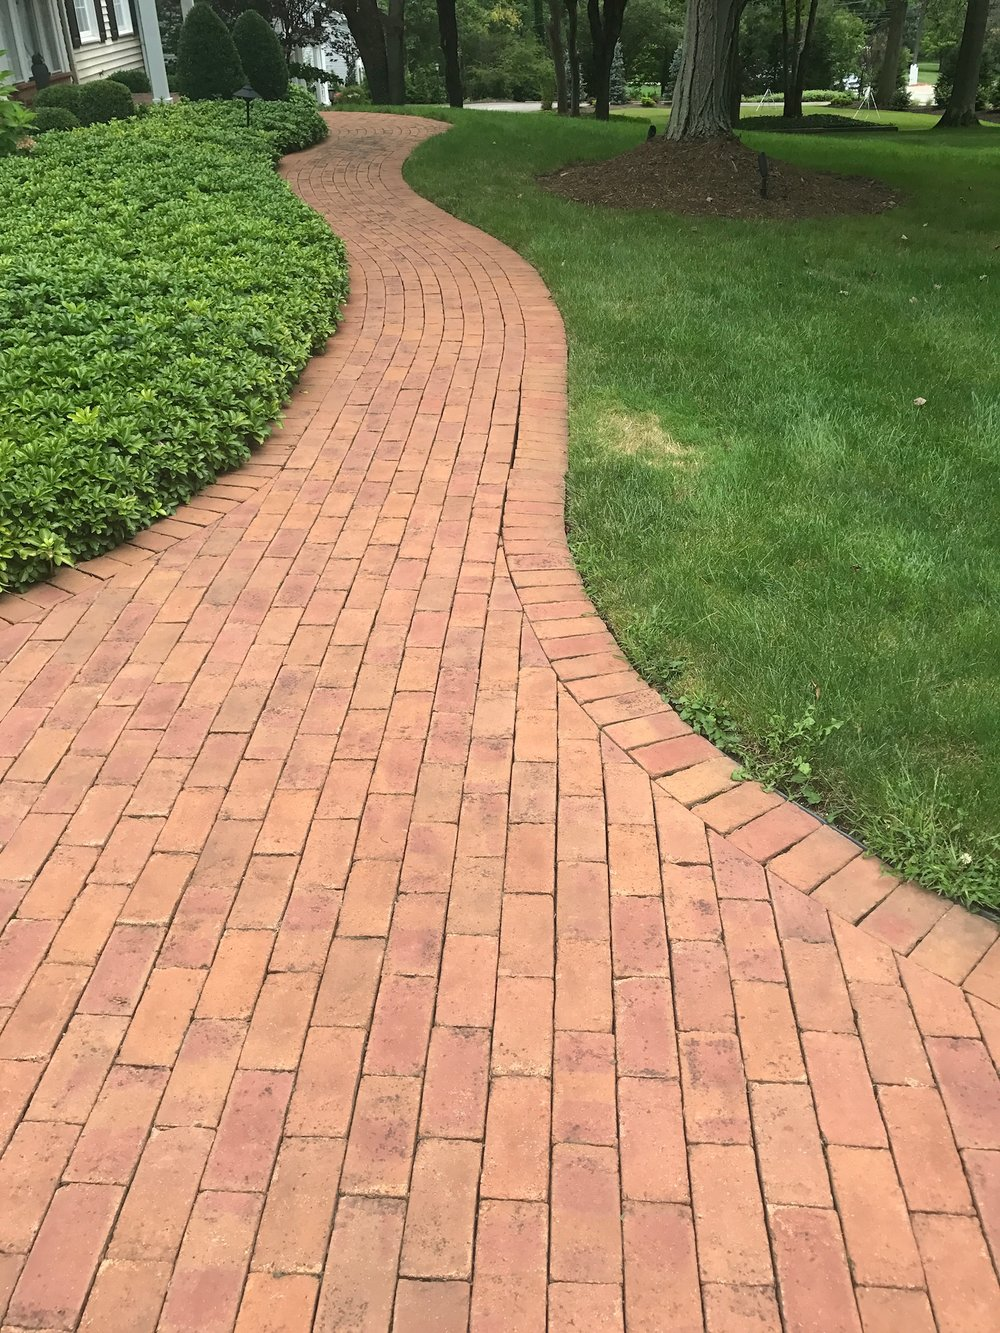 Landscape maintenance and lawn care in Novelty, OH